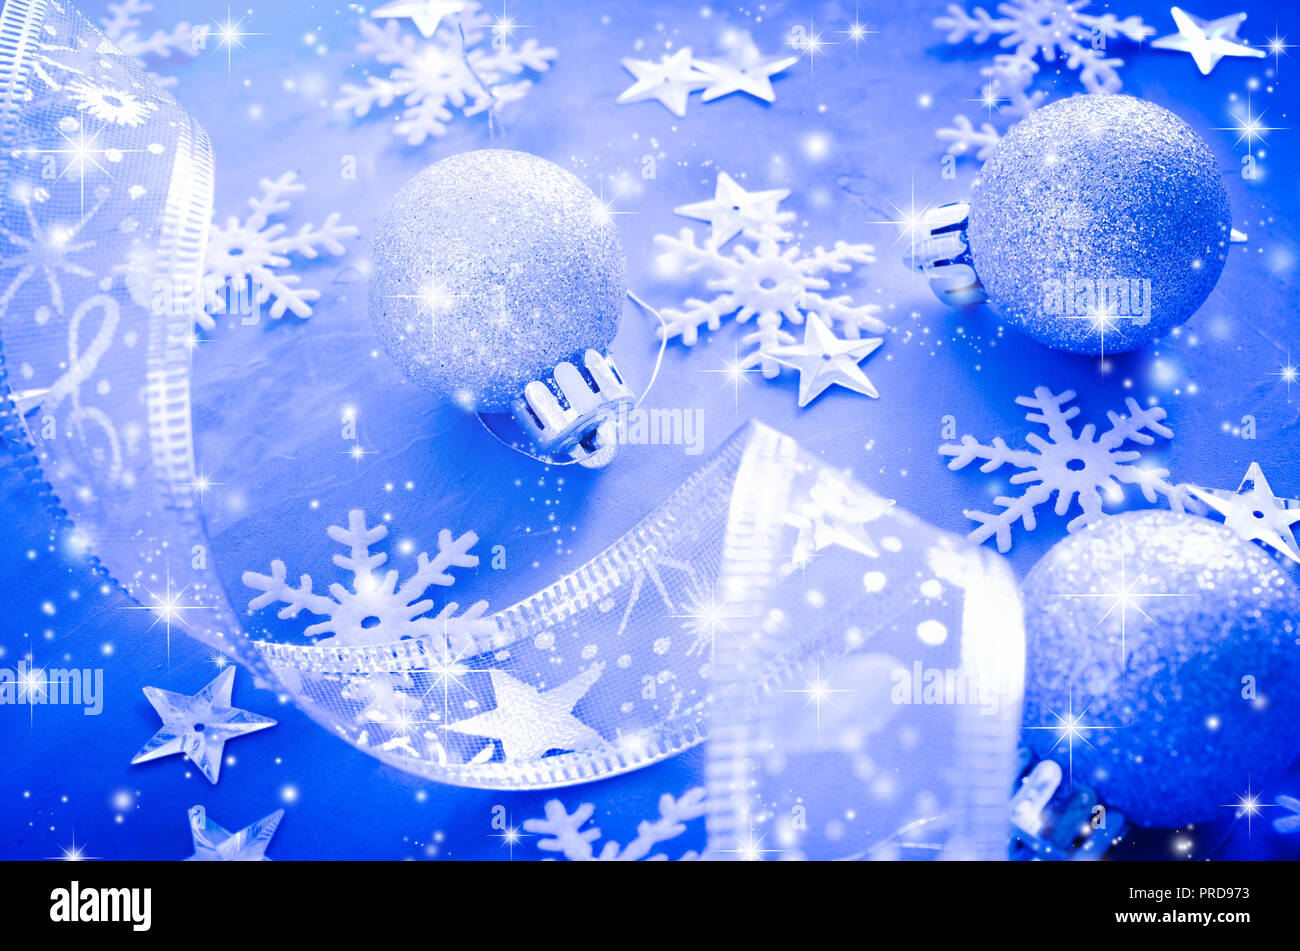 blue christmas background christmas postcard with snow effect curly ribbon with decorative balls and snowflakes xmas decorations christmas postcar stock photo alamy https www alamy com blue christmas background christmas postcard with snow effect curly ribbon with decorative balls and snowflakes xmas decorations christmas postcar image220954135 html